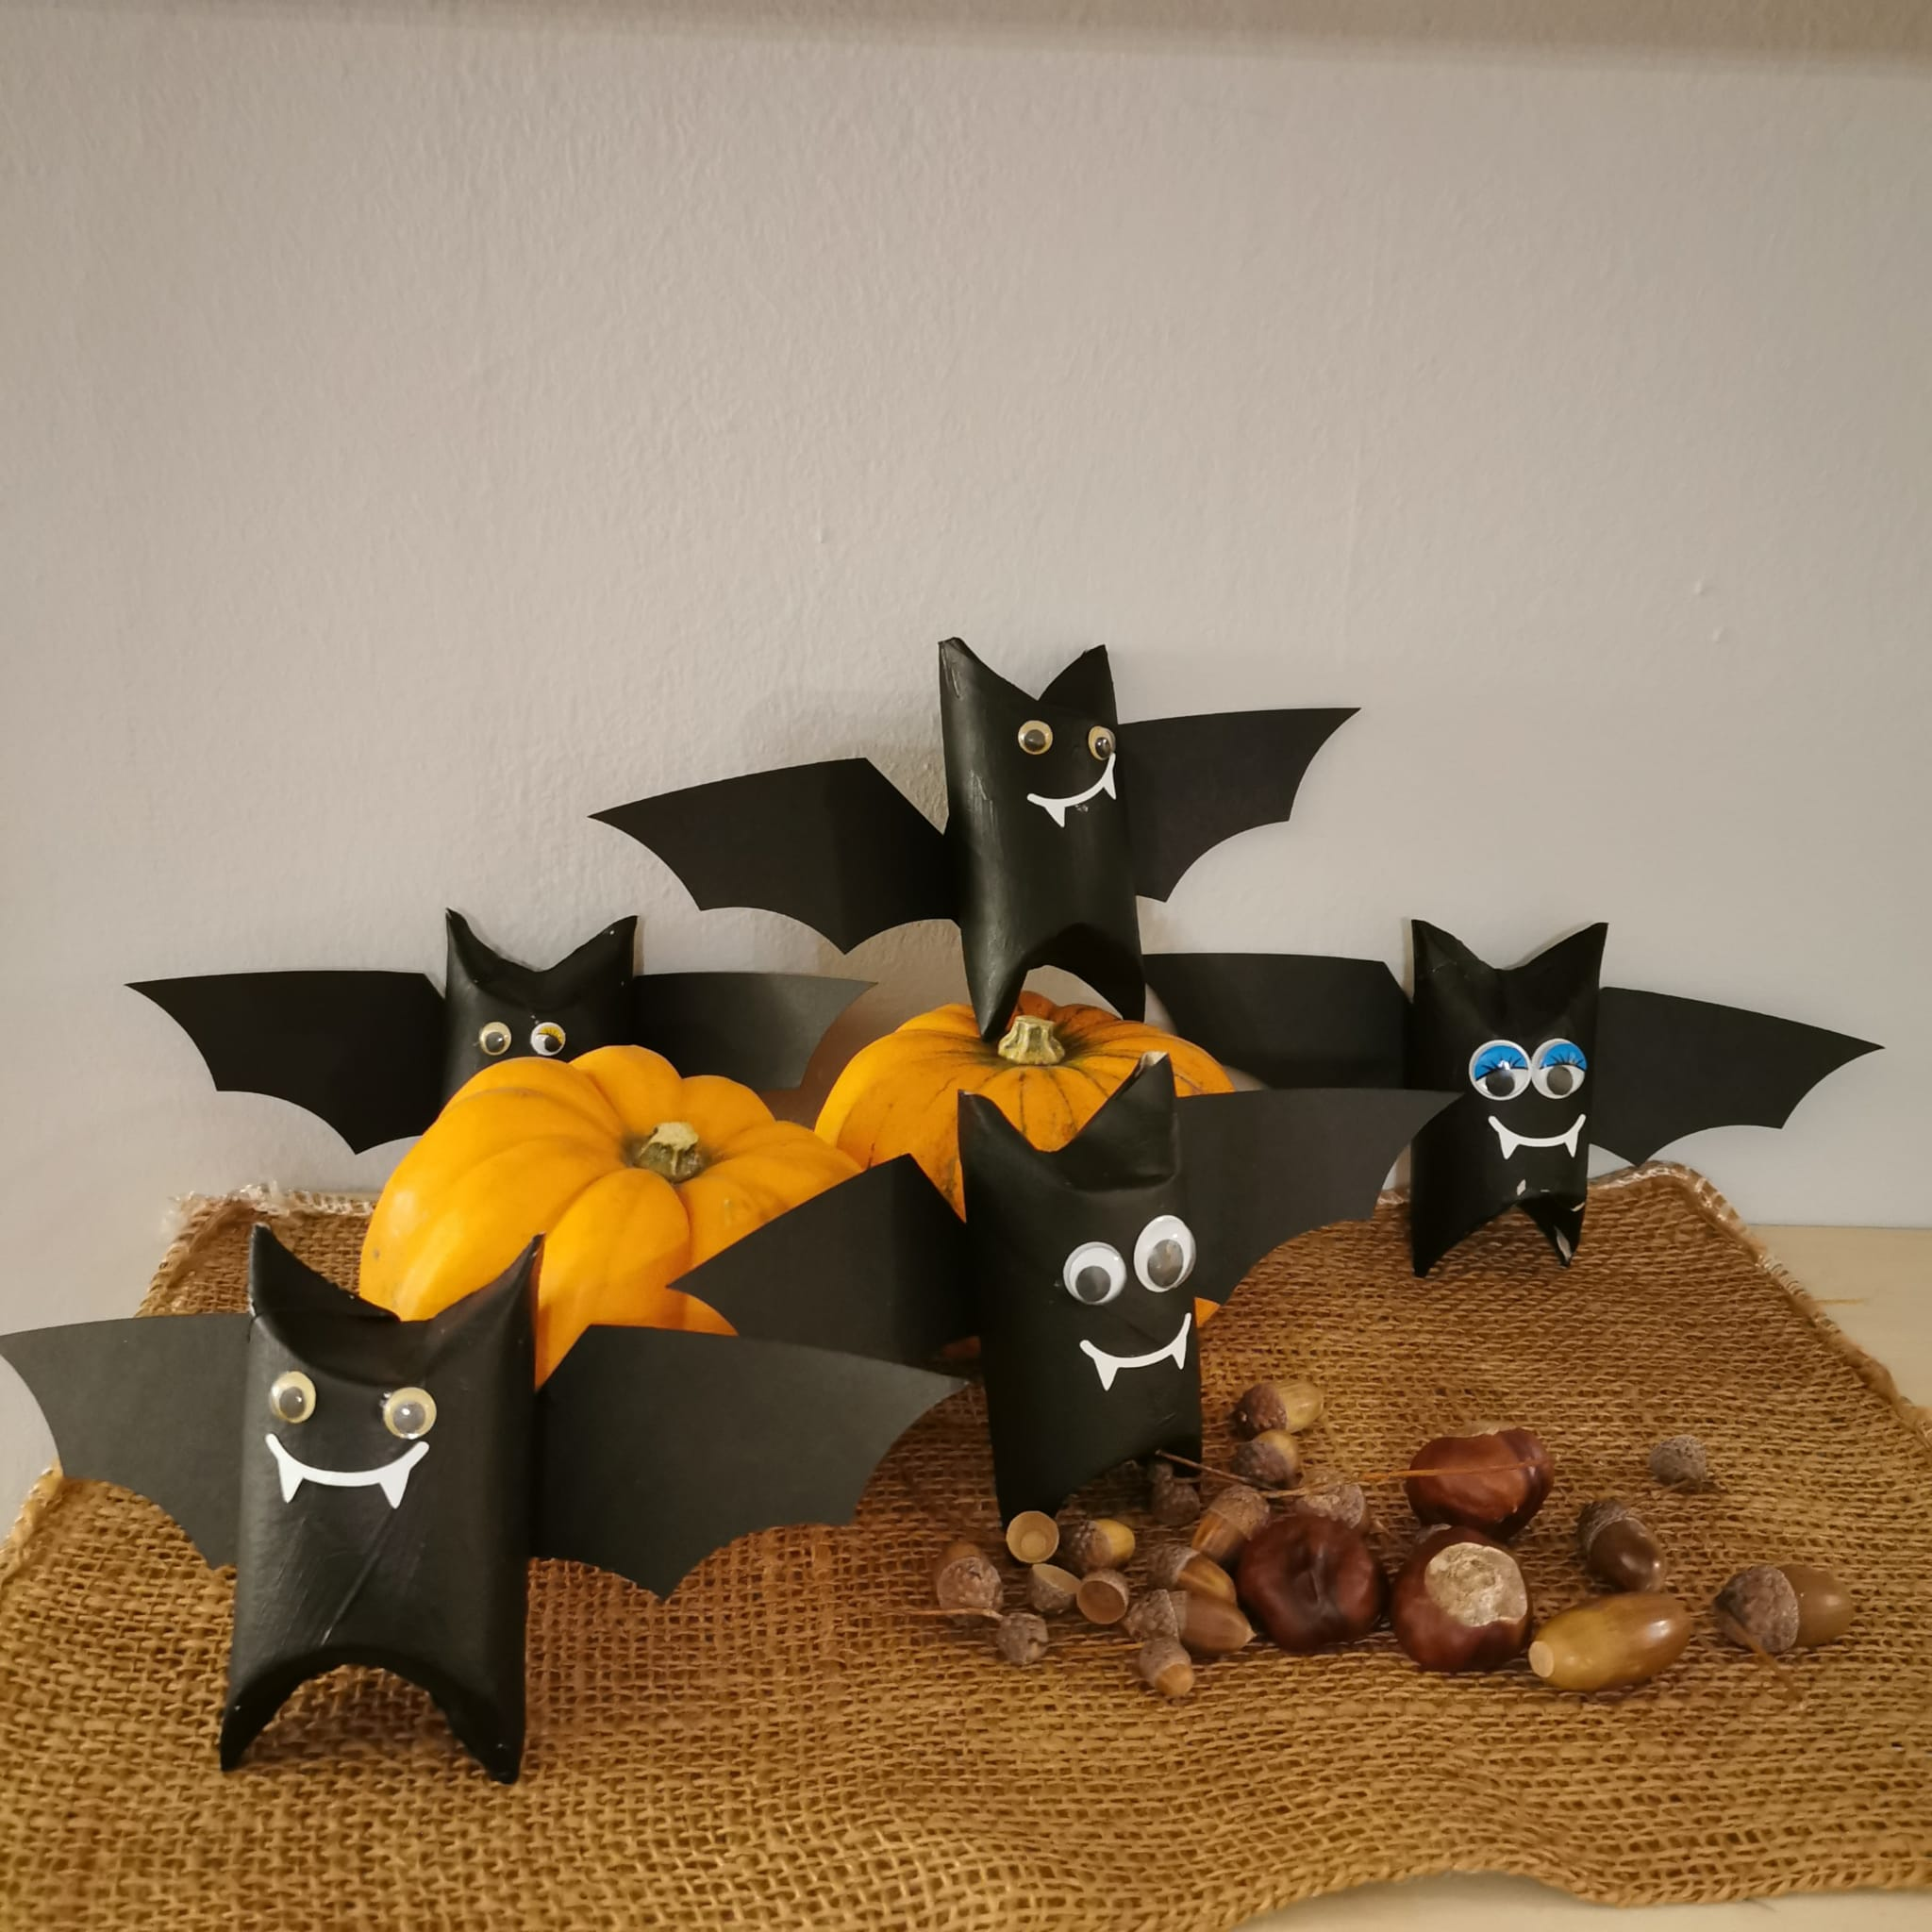 Homemade Bats crafted from toilet paper rolls